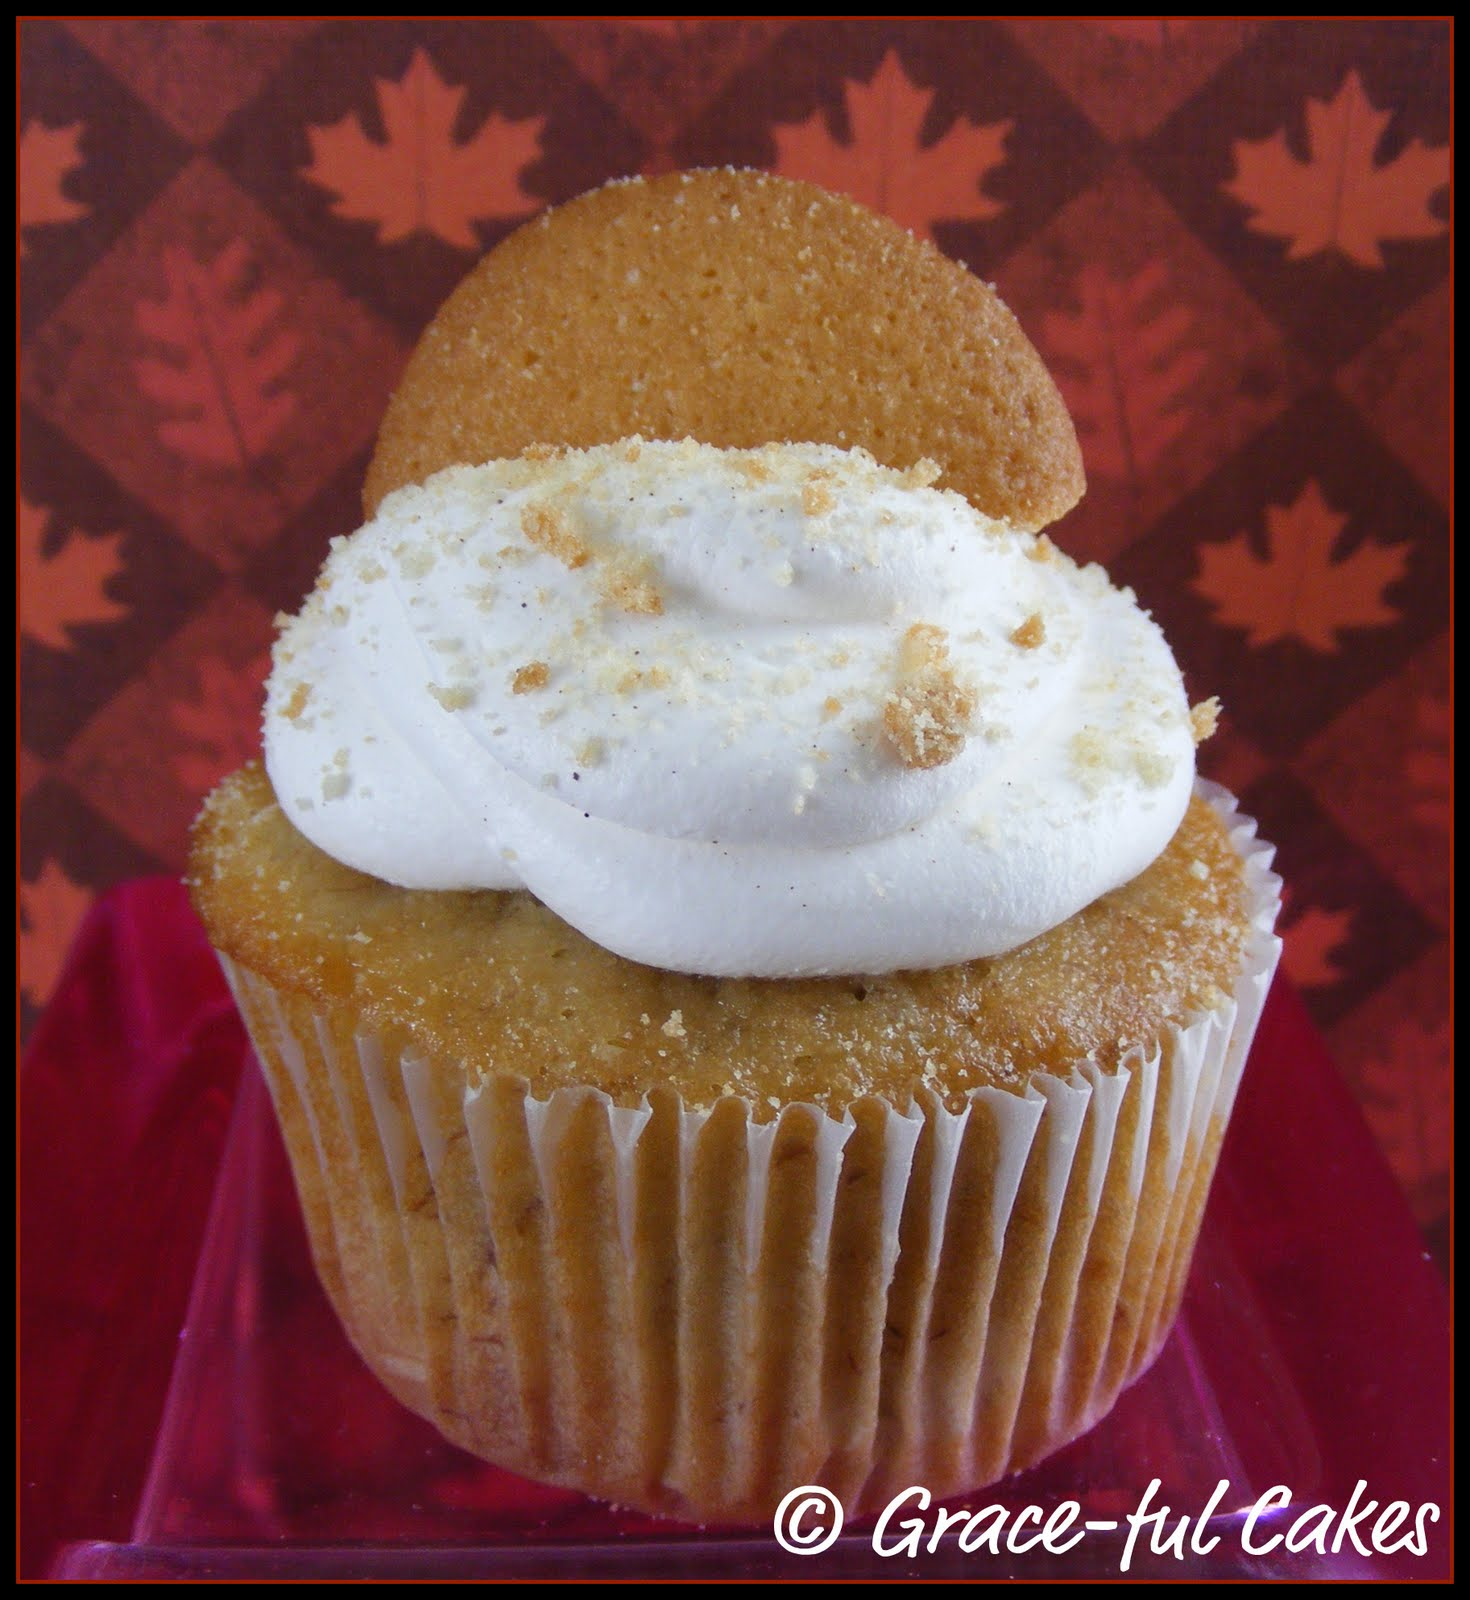 apple spice cupcake, with caramel filling, topped with whipped cream ...